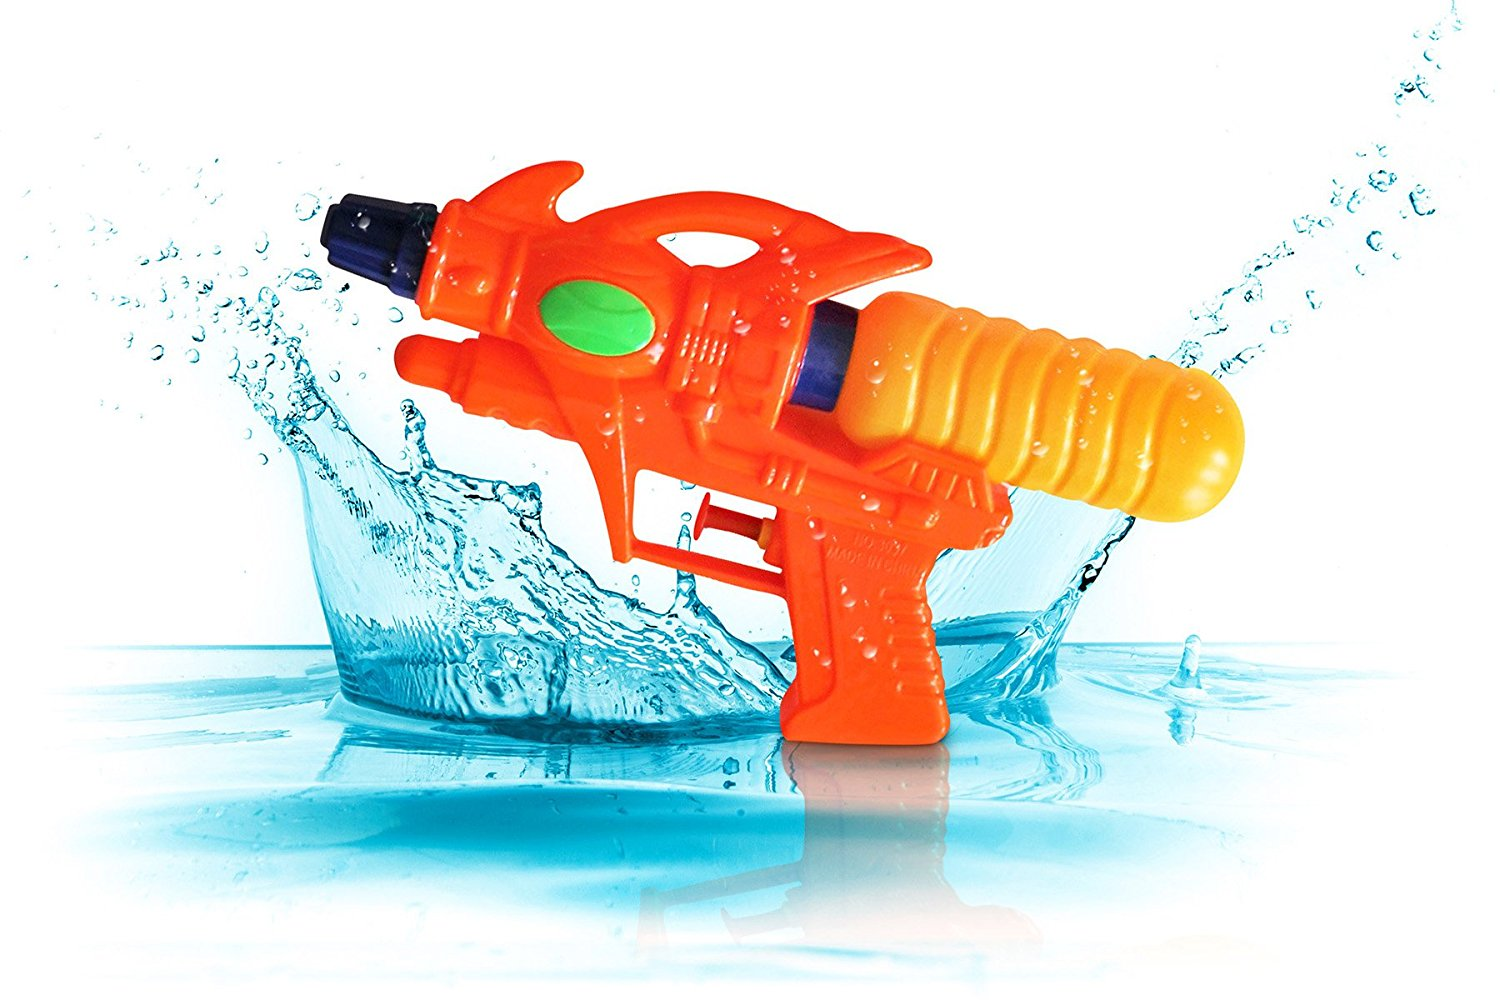 Water Shooter Guns (6 Pack) for Kids and Children - Fun Toy Pistol Sprayer for Summer Outdoor Sports Activity Games | Assorted Colors